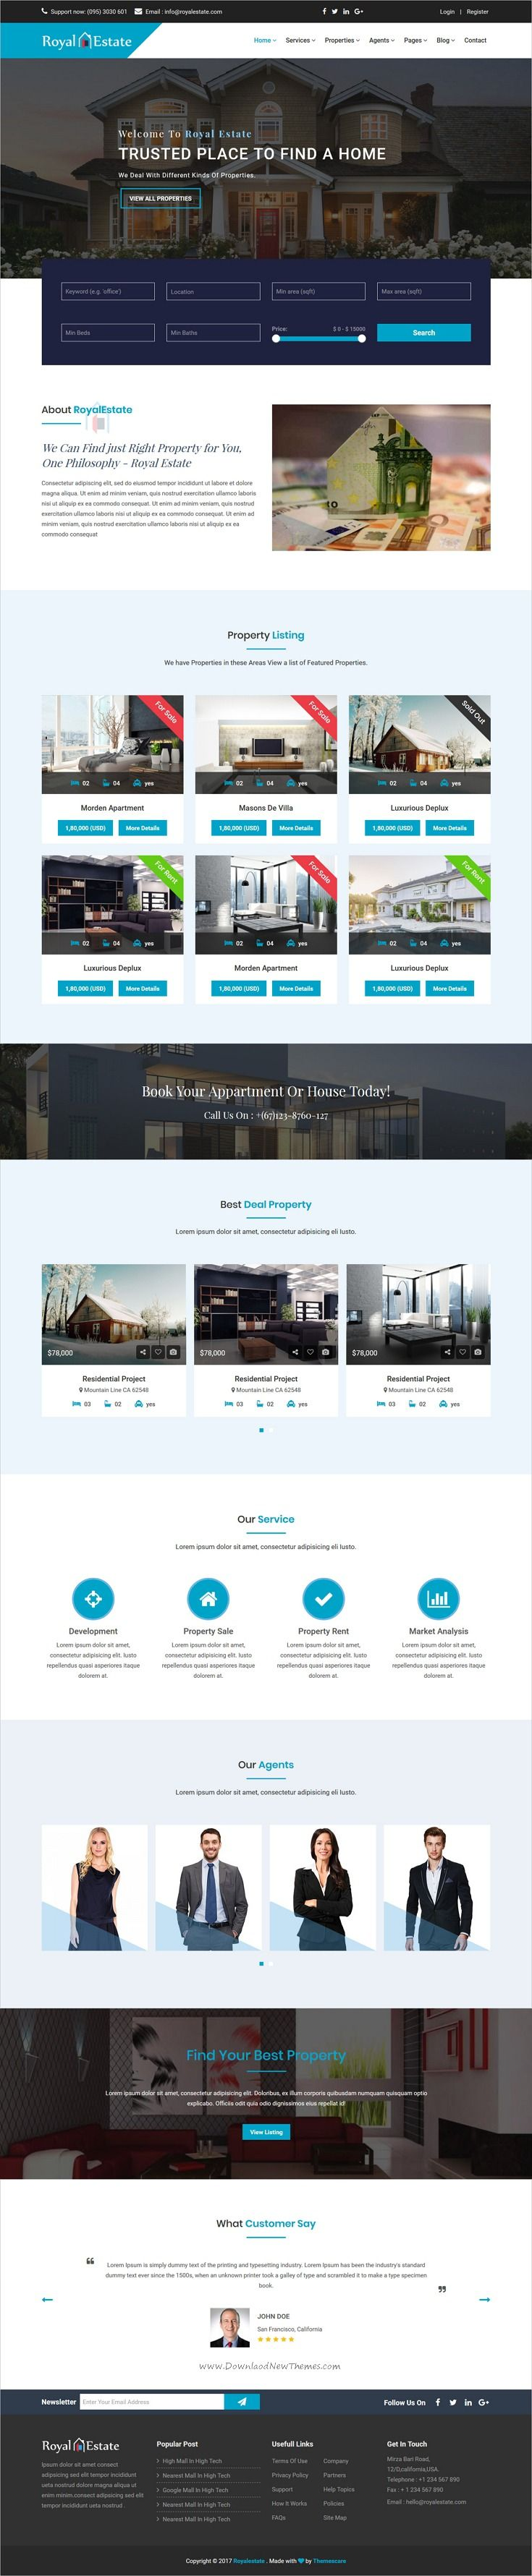 Royal Estate is clean and modern design 2in1 responsive #HTML5 template for #realestate and #property agencies professional website download now..